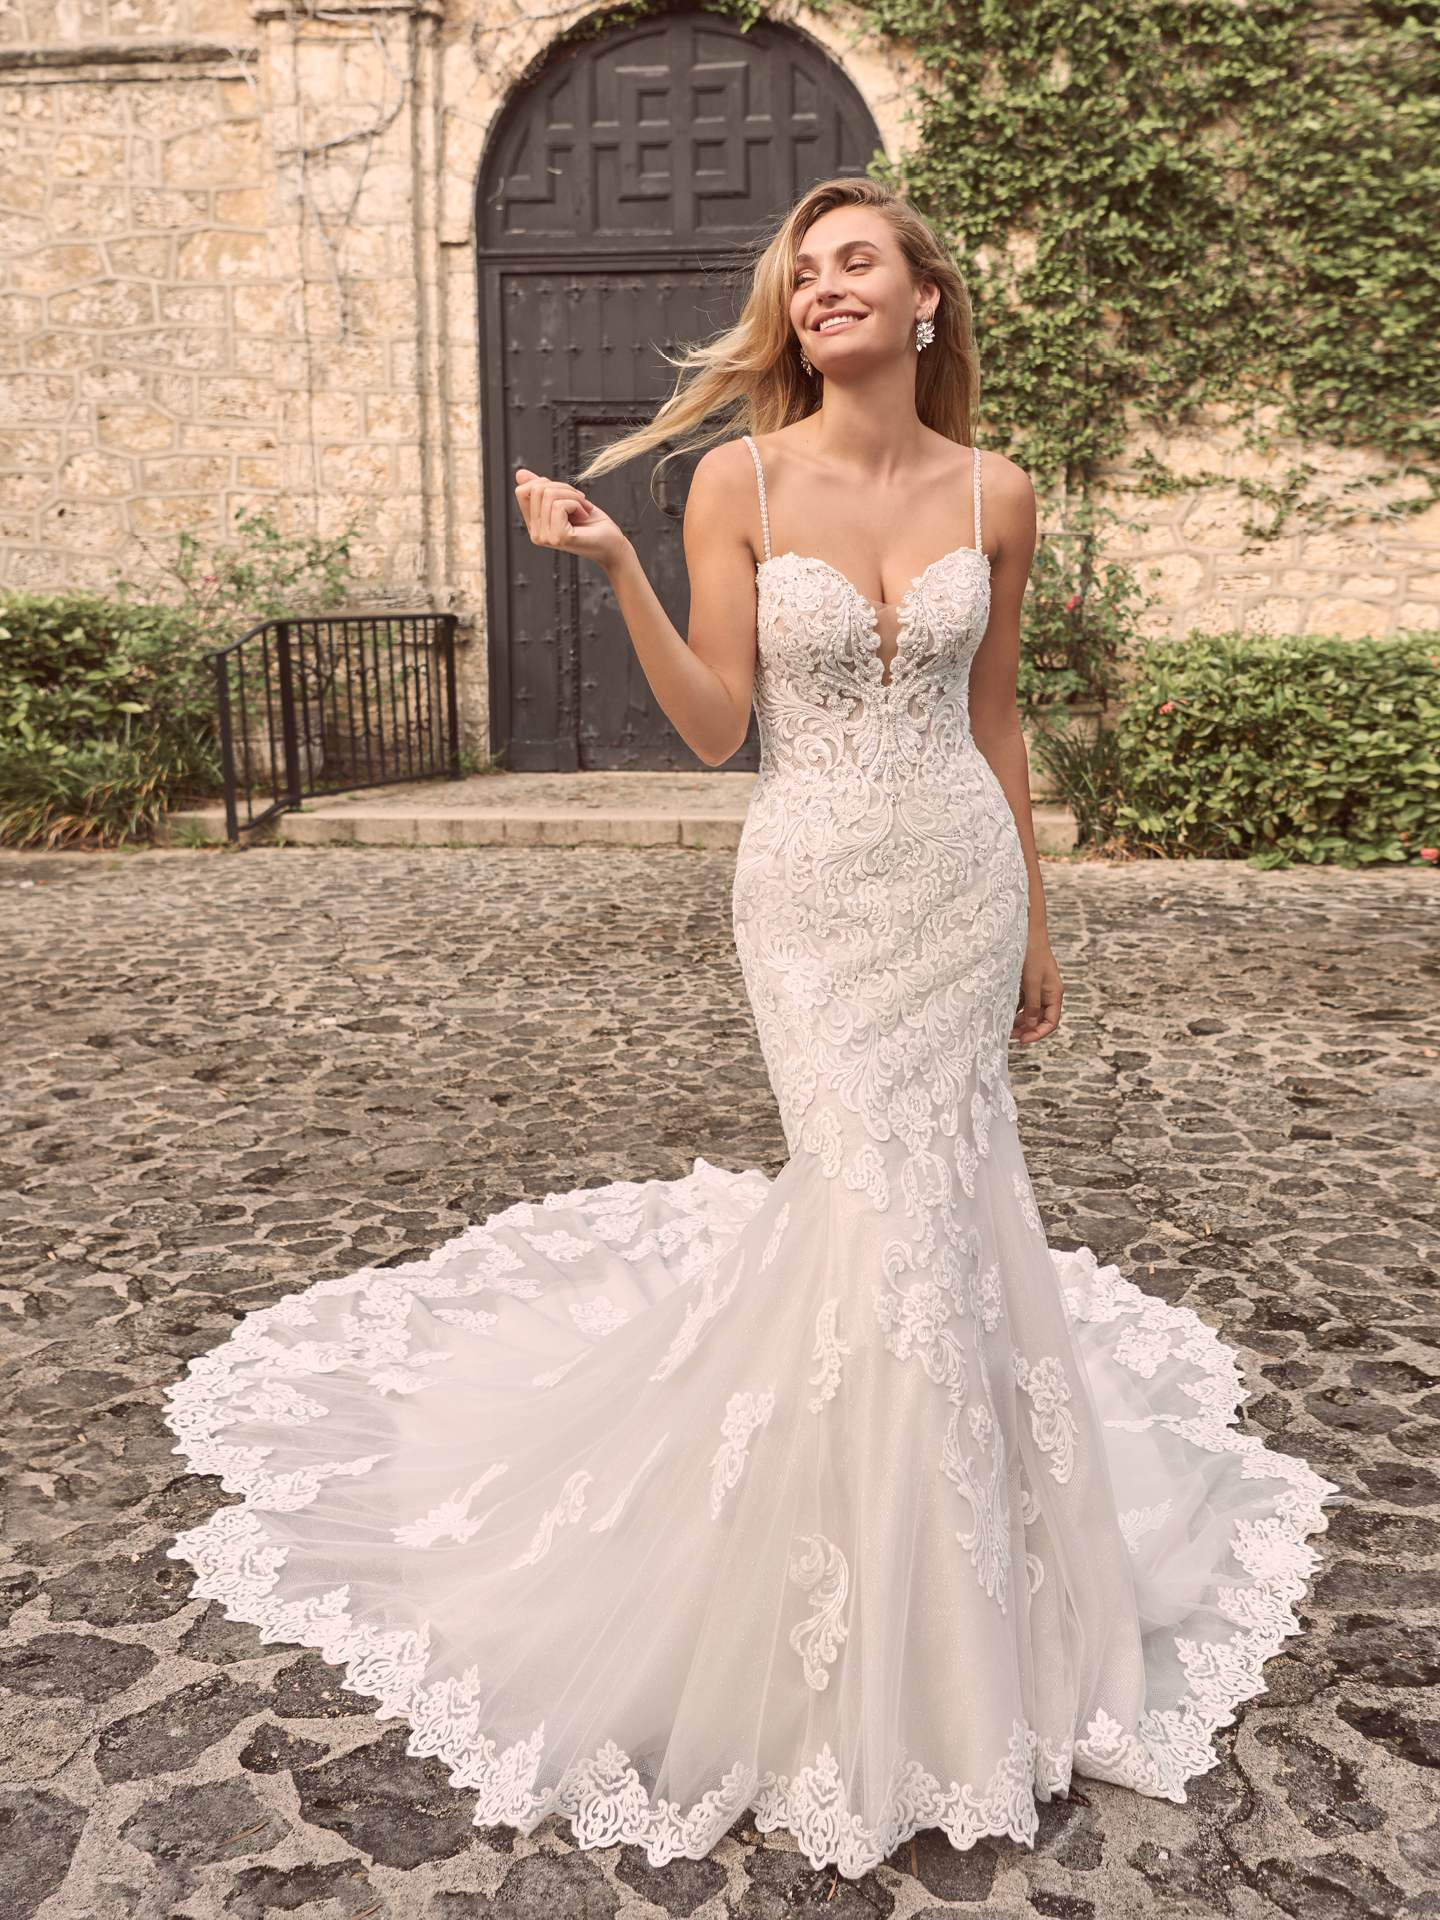 Sparkly Lace Fit and flare Bridal Dress Wedding Dress